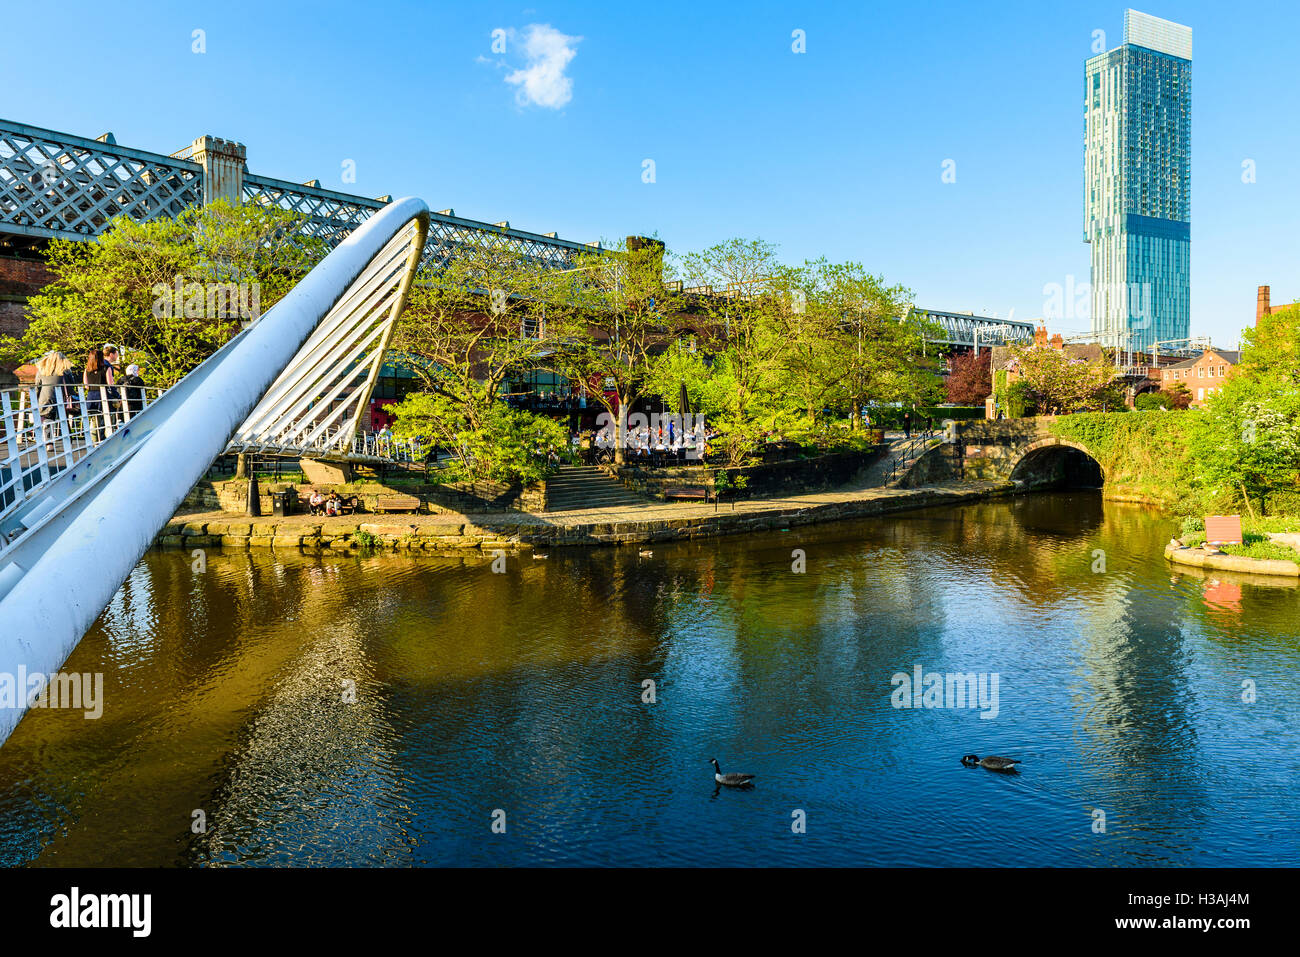 The Merchant's Bridge Castlefield Manchester with the Beetham Tower on the skyline - Stock Image